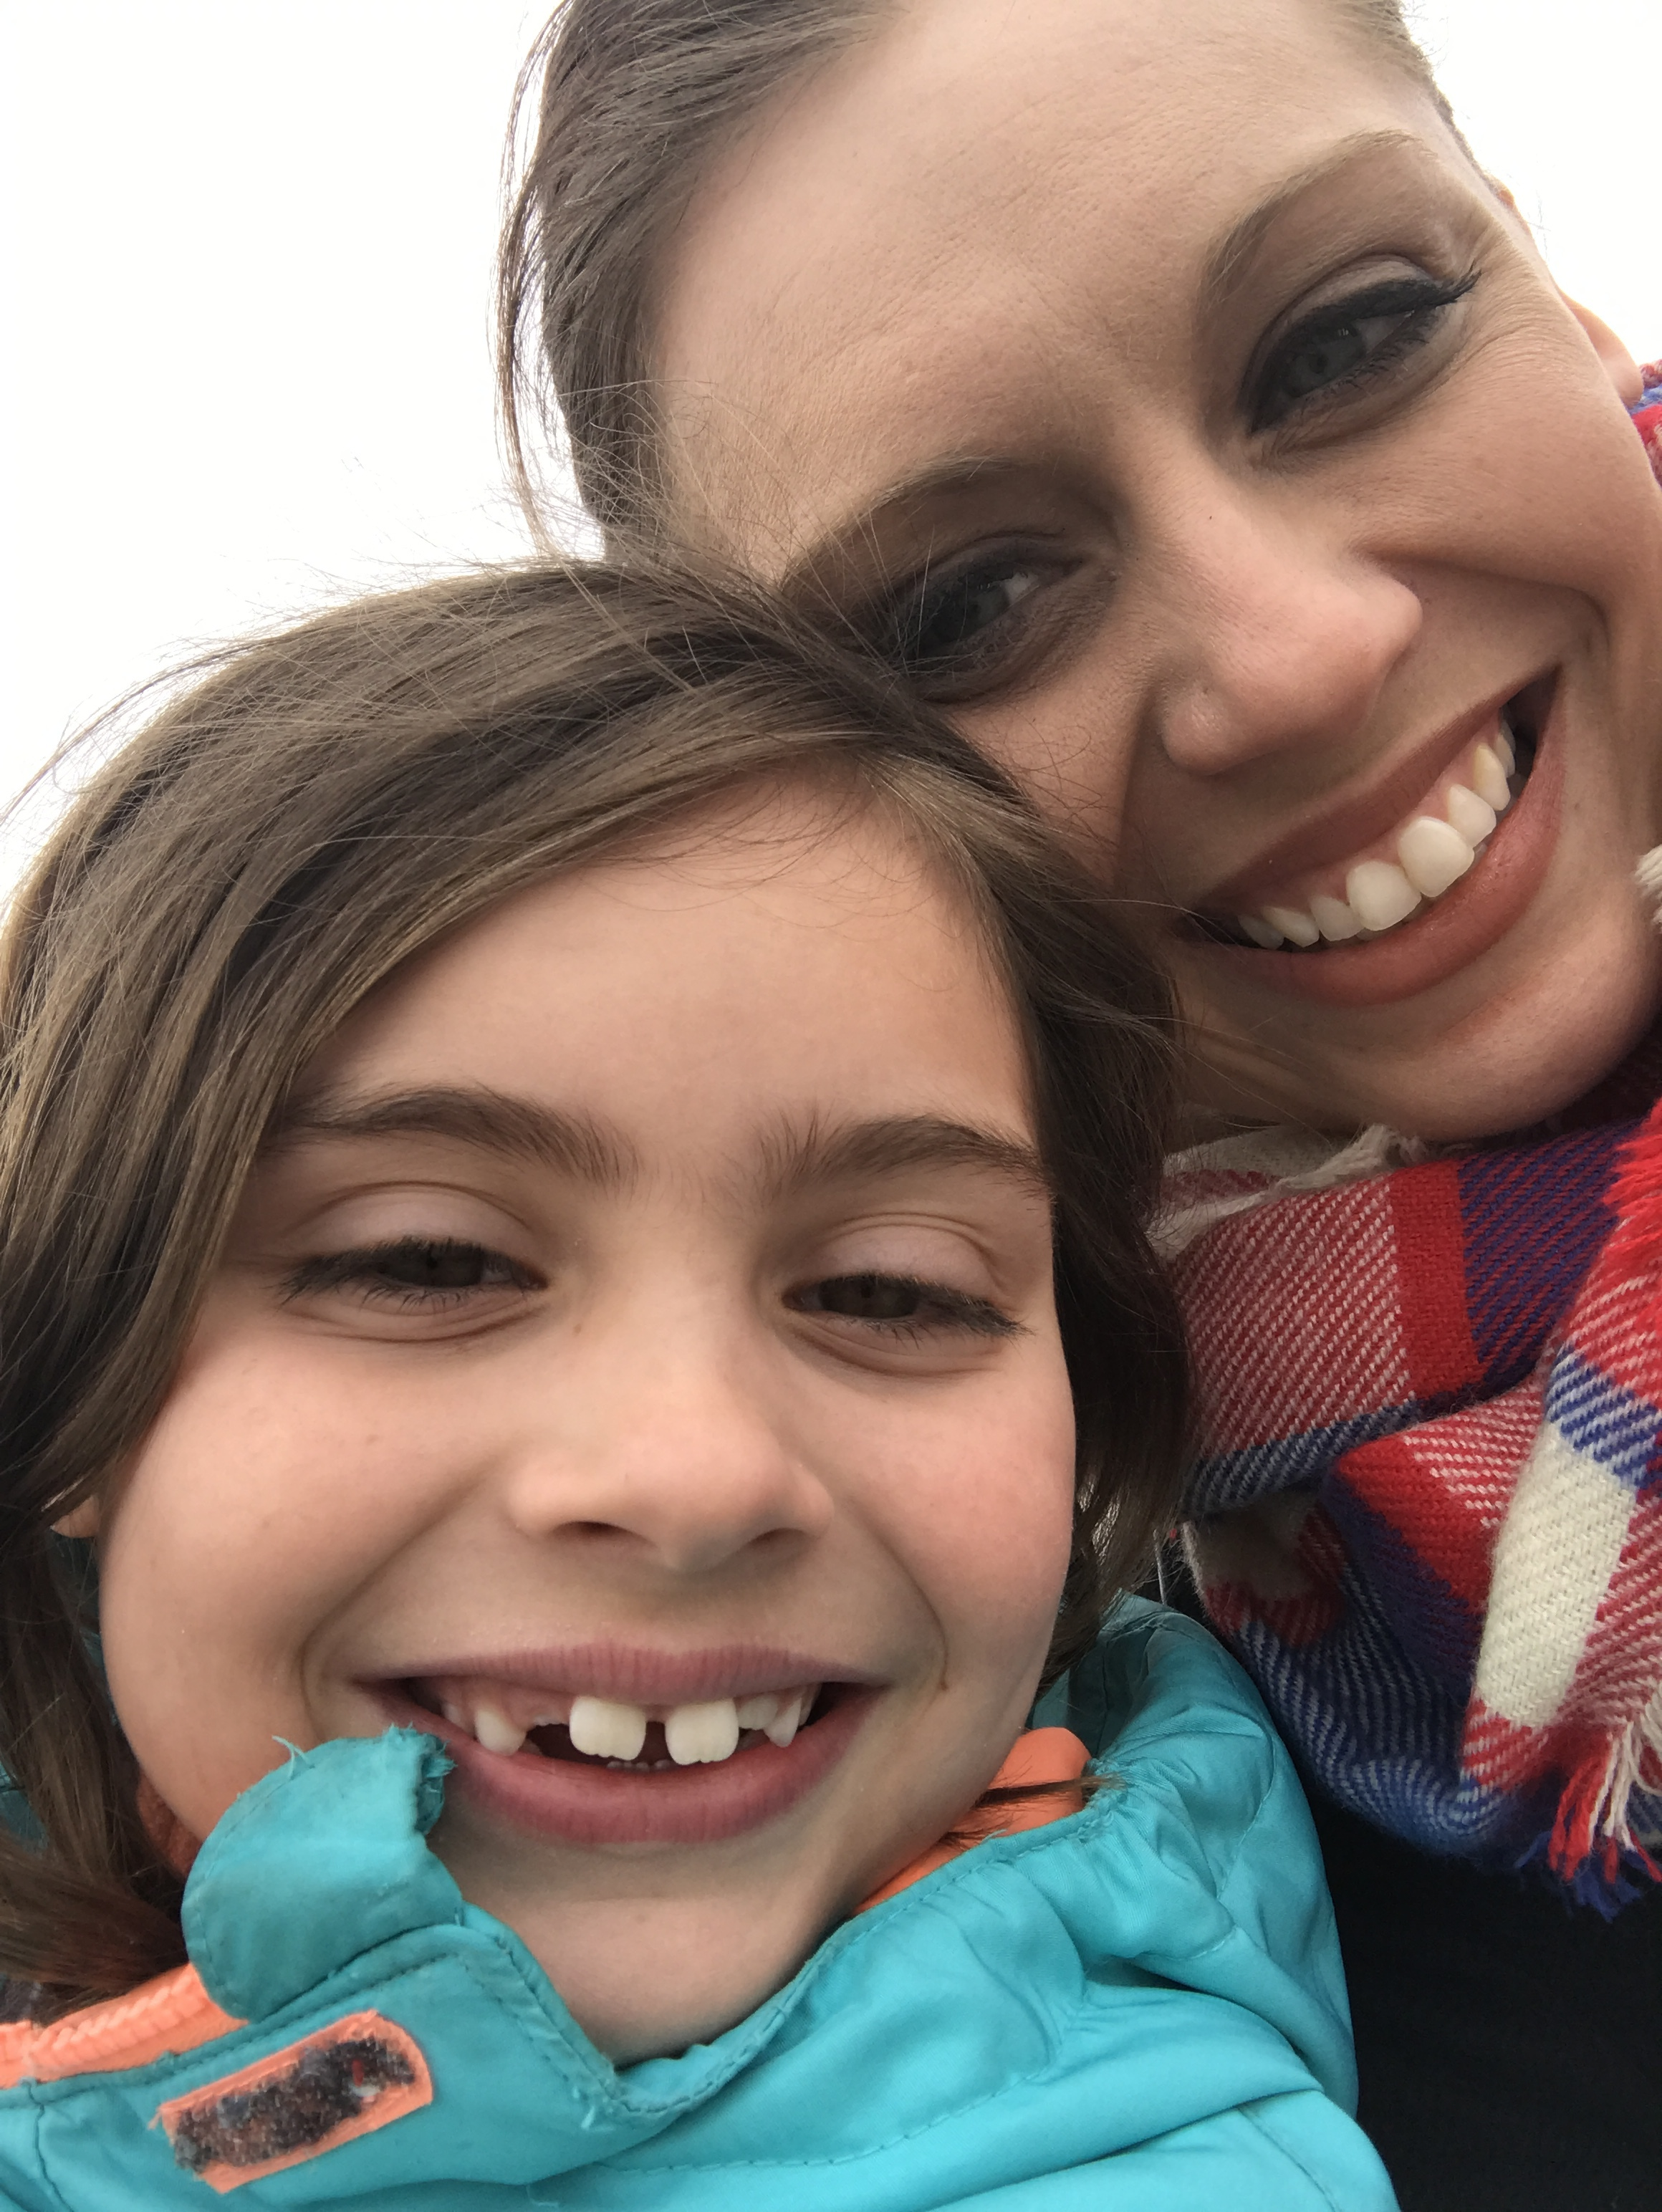 Sorry for the super awkward close up. We were on the swings at her school during recess this week. Sometimes we just have to take what we can get, right?